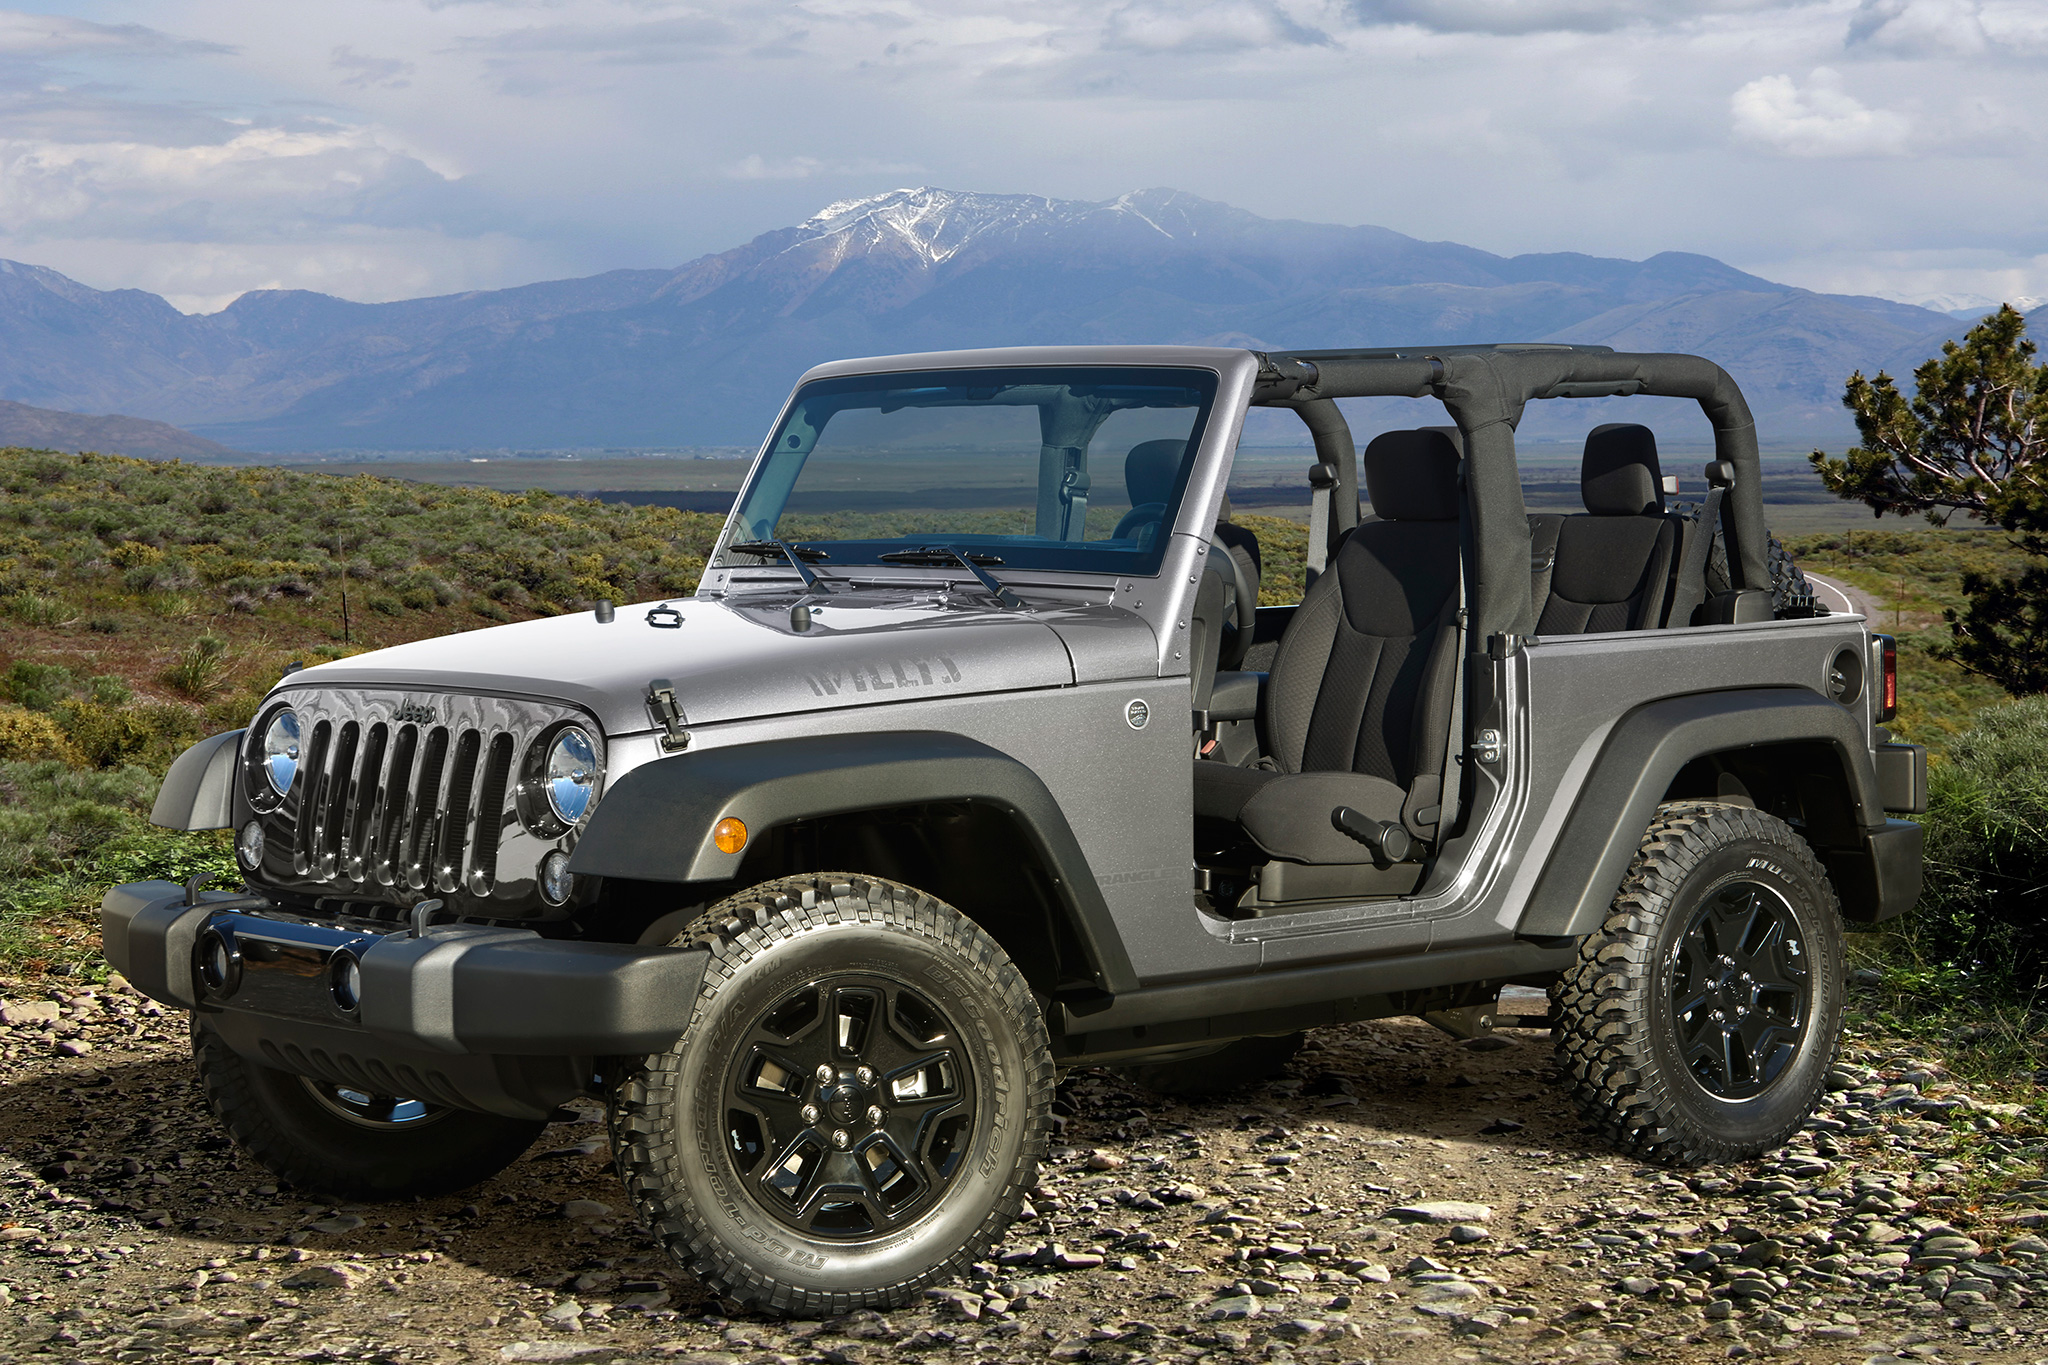 The secret life of a jeep owner